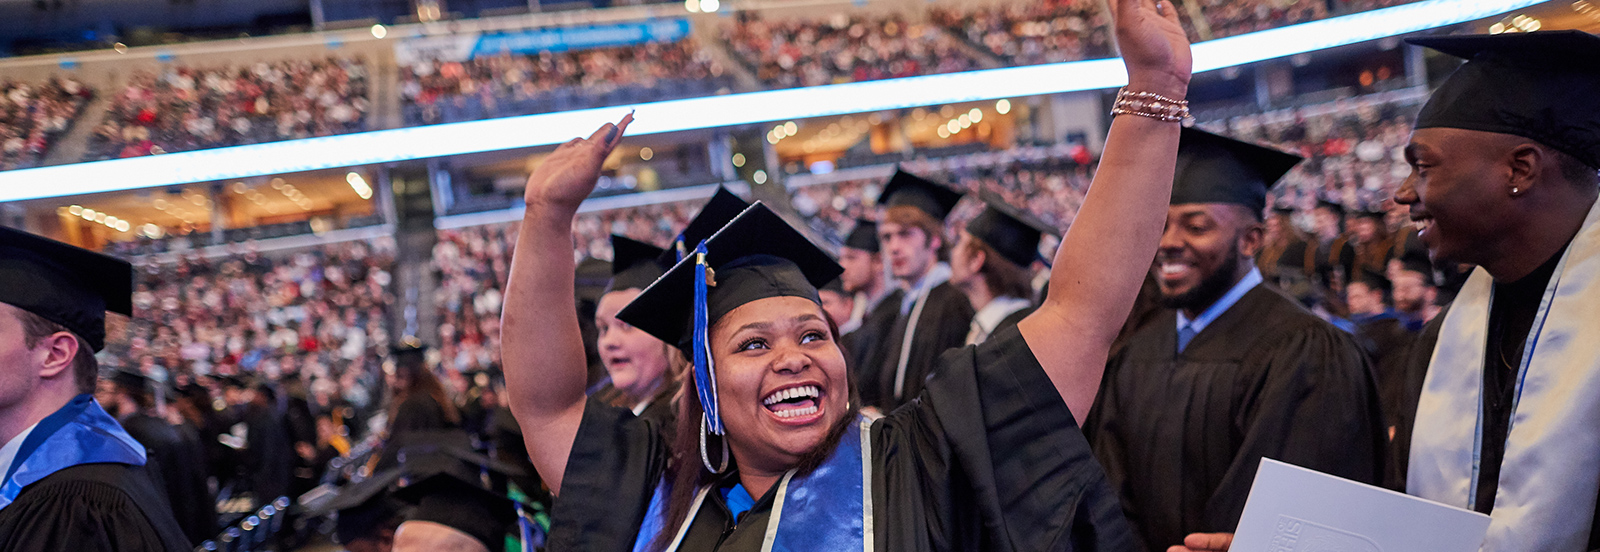 excited graduate at Commencement